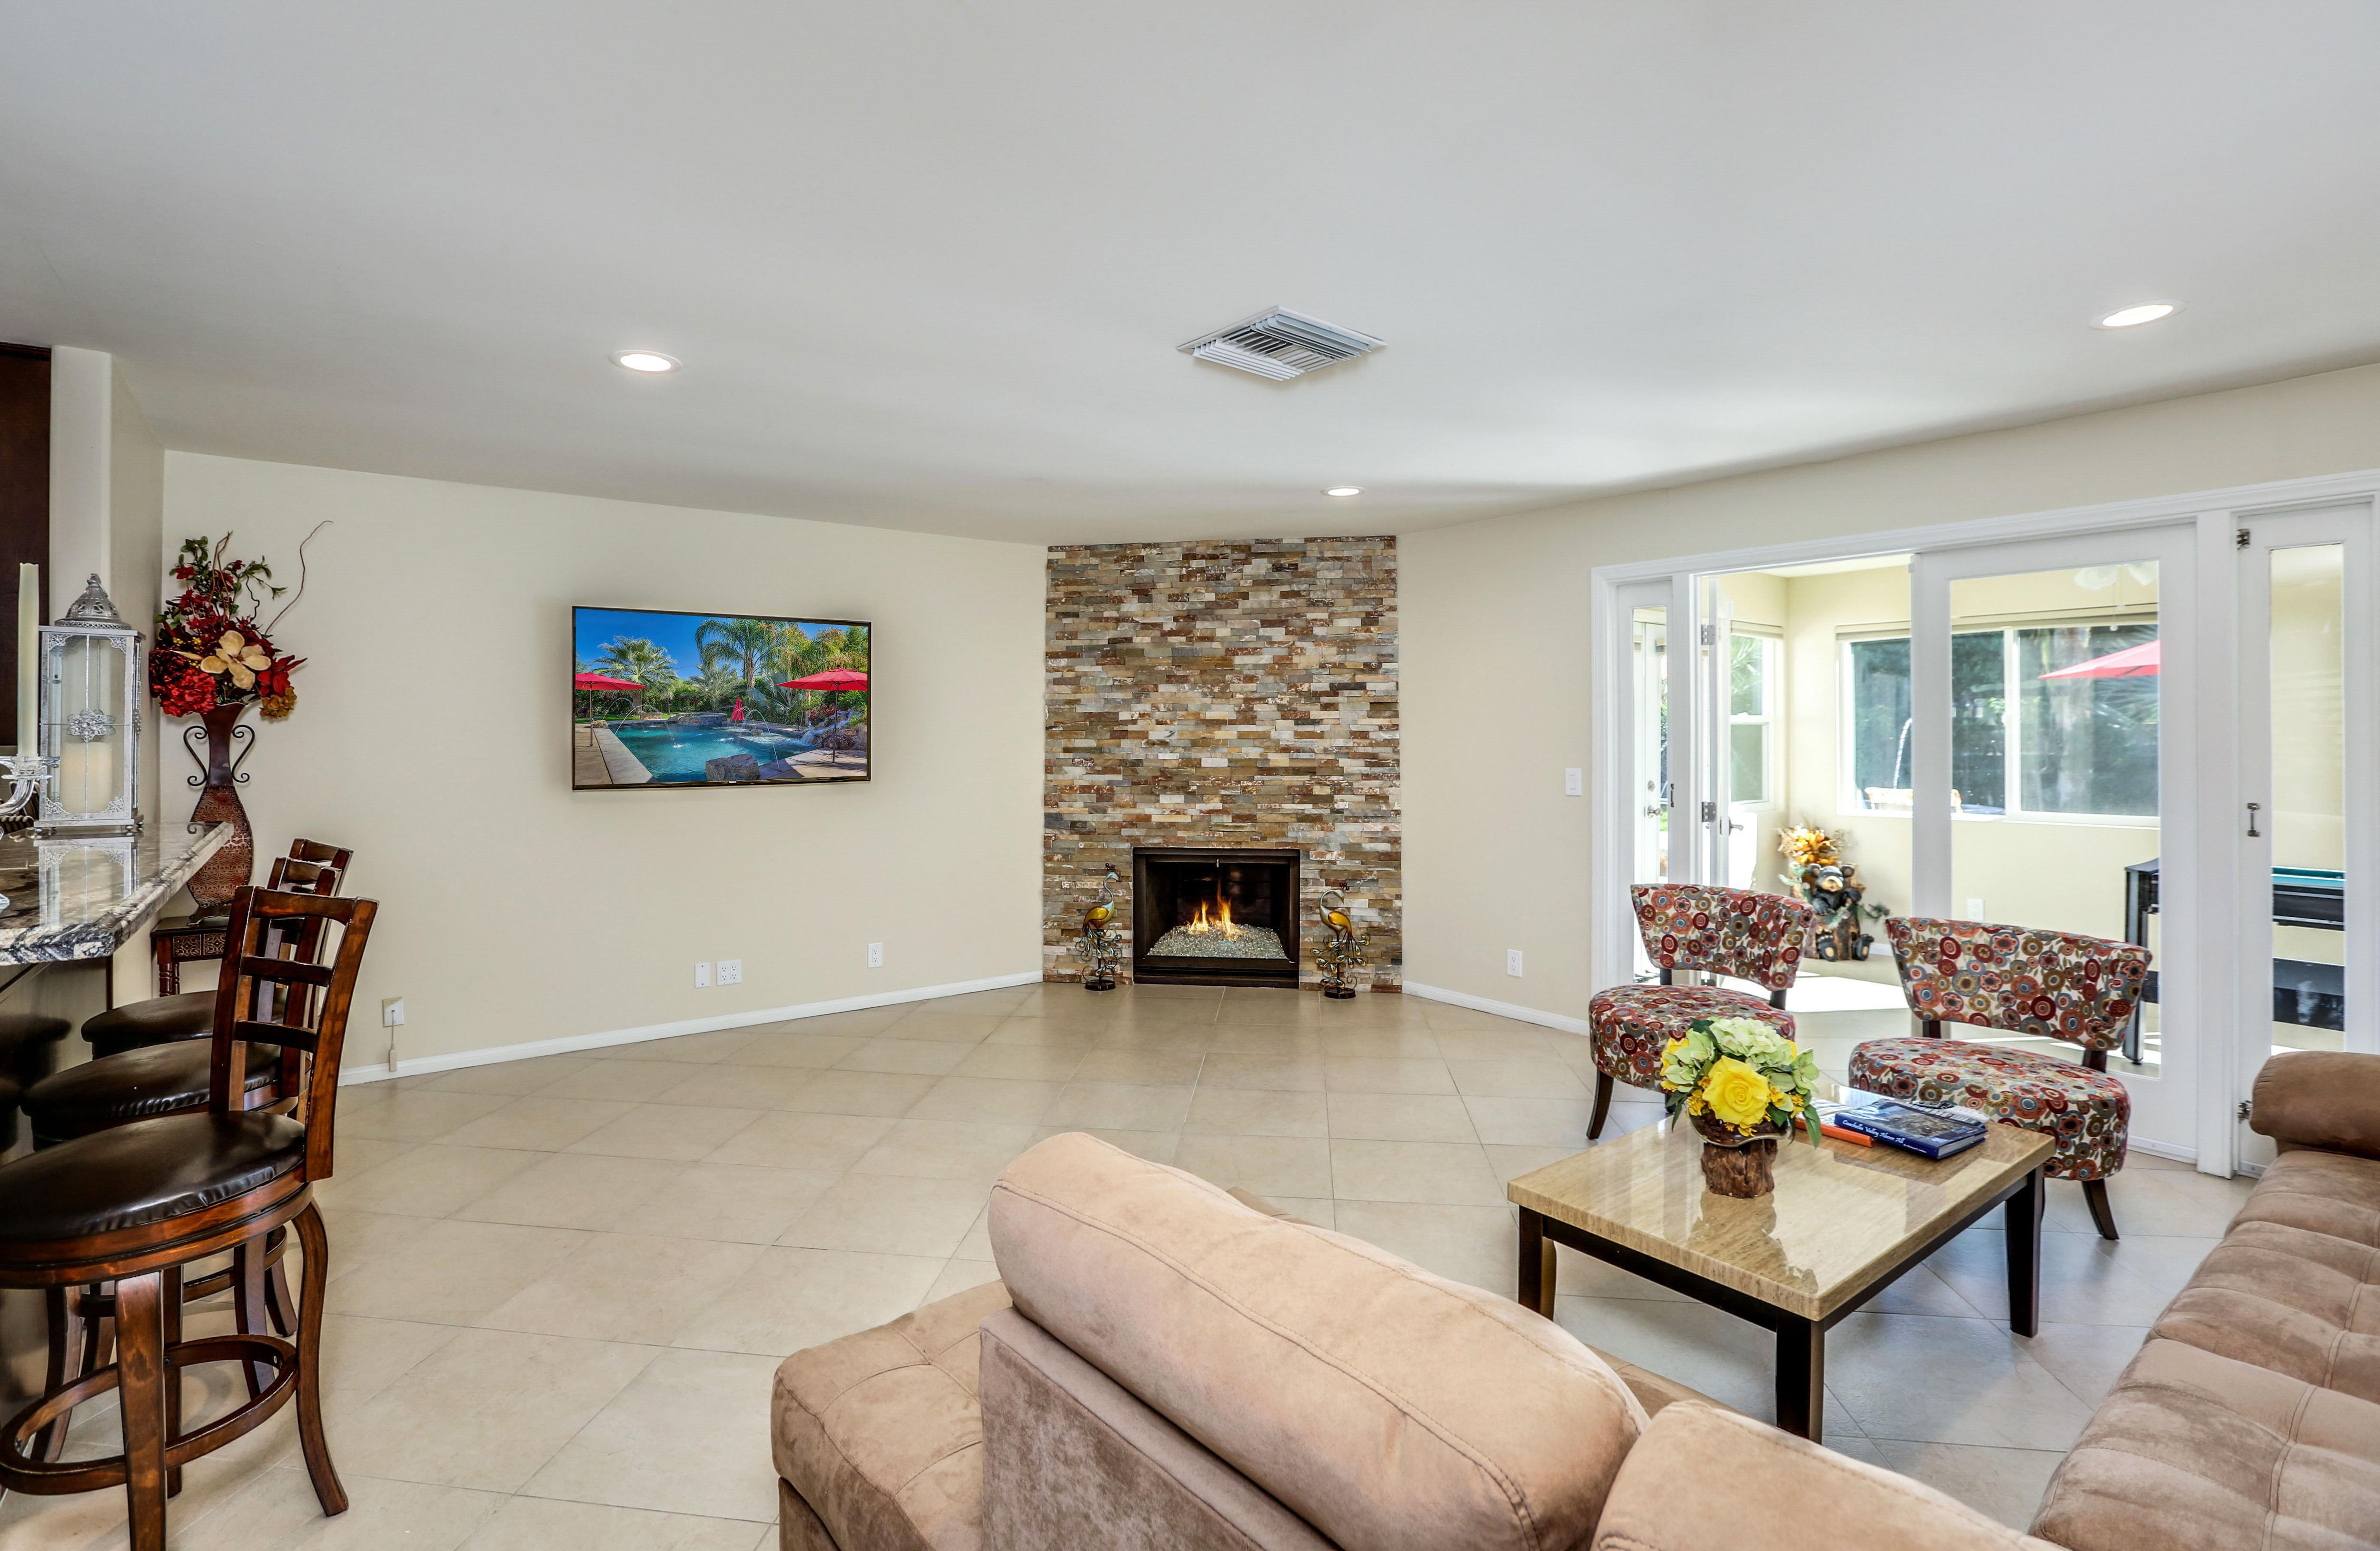 Sprawl out on a sectional and 2 accent chairs while the fireplace warms the open living space.